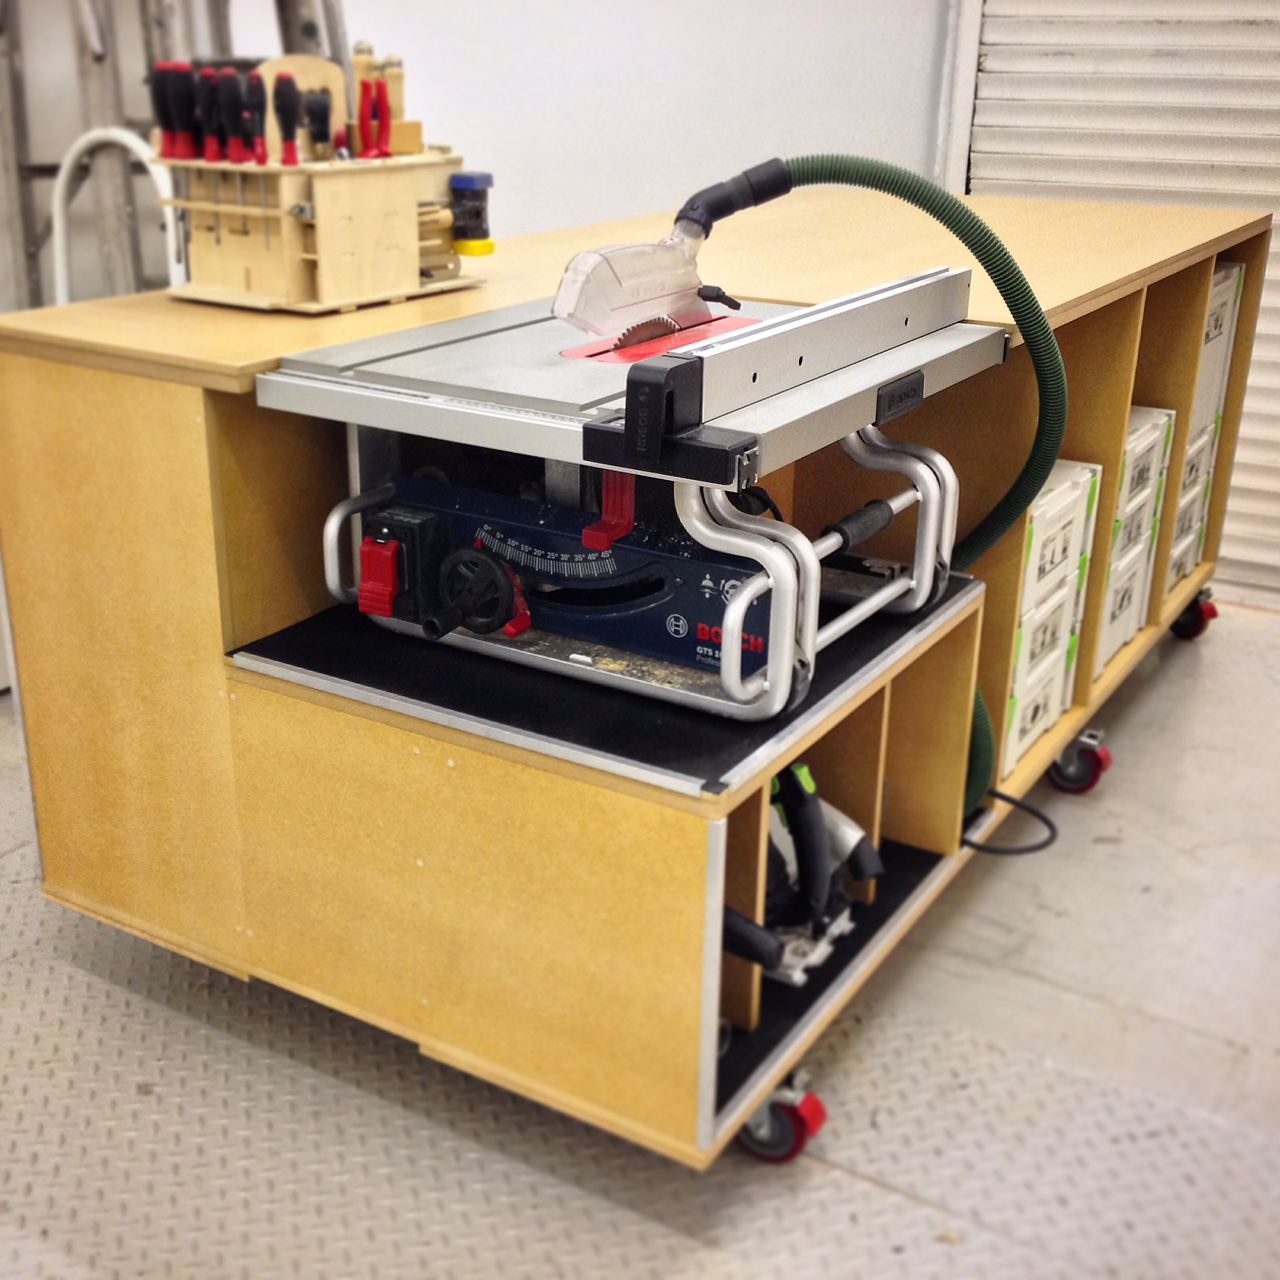 Another Rolling Workbench